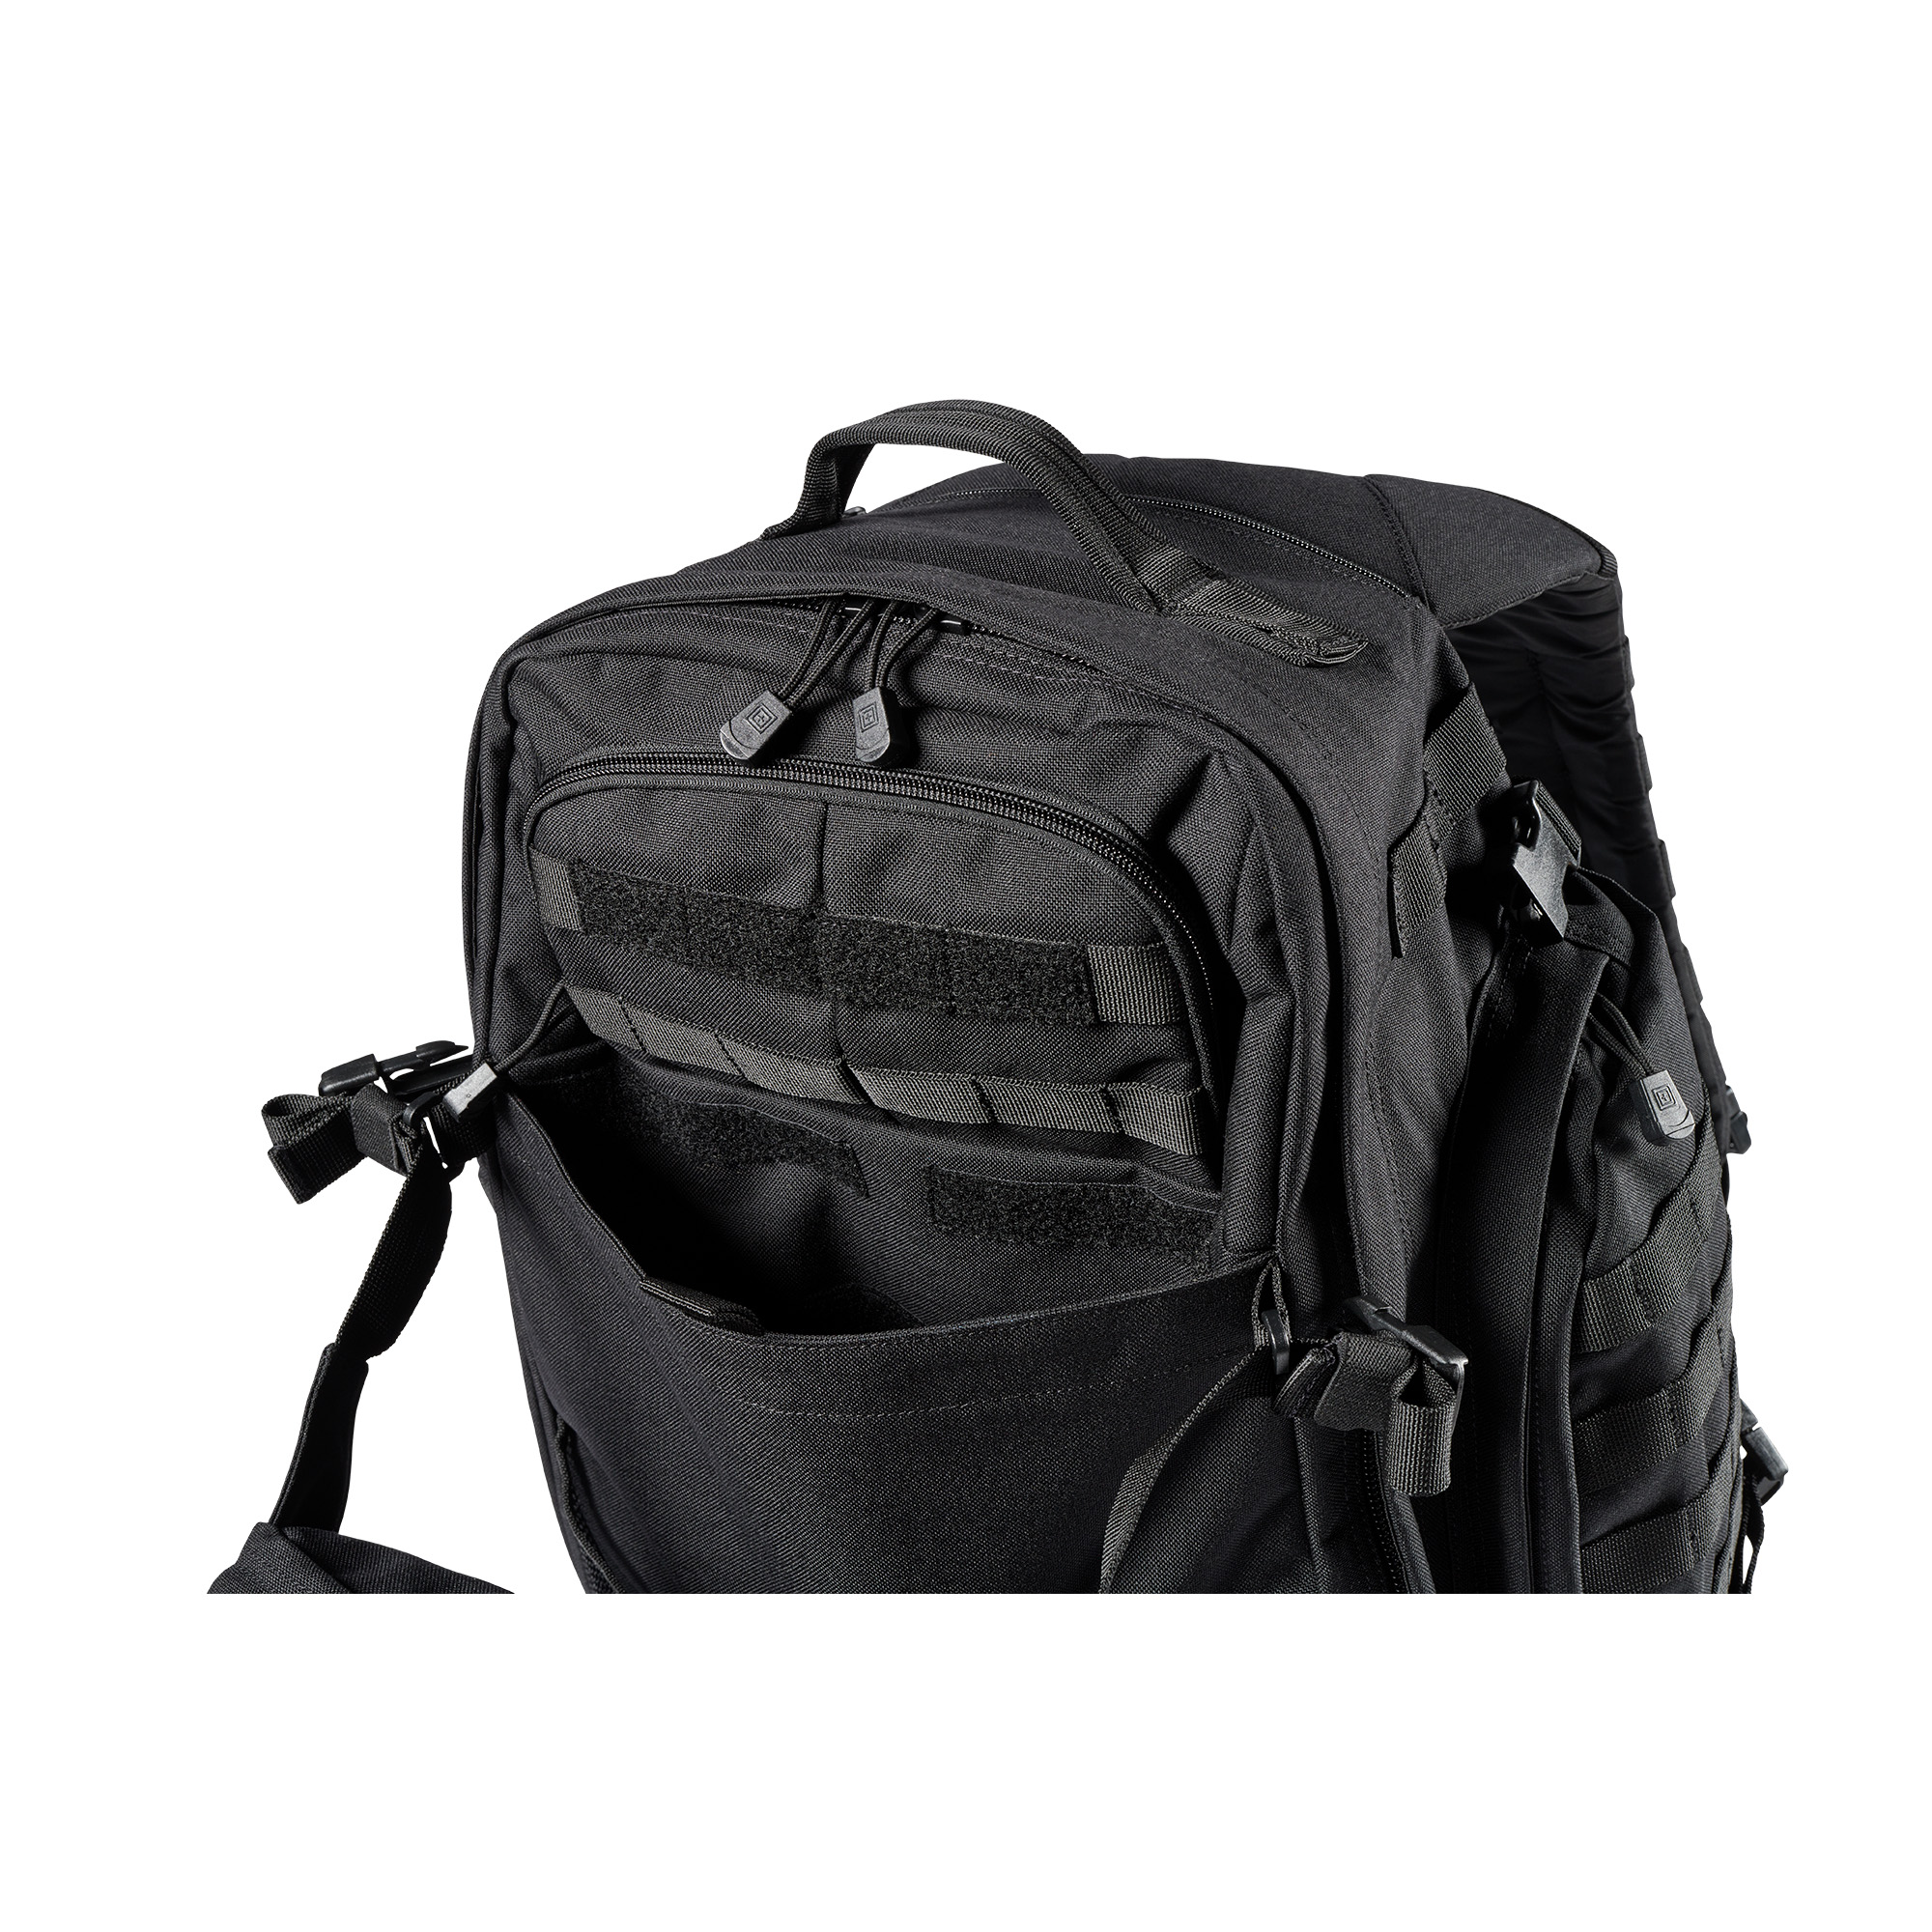 Balo 5.11 Tactical Rush 72 2.0 – Black